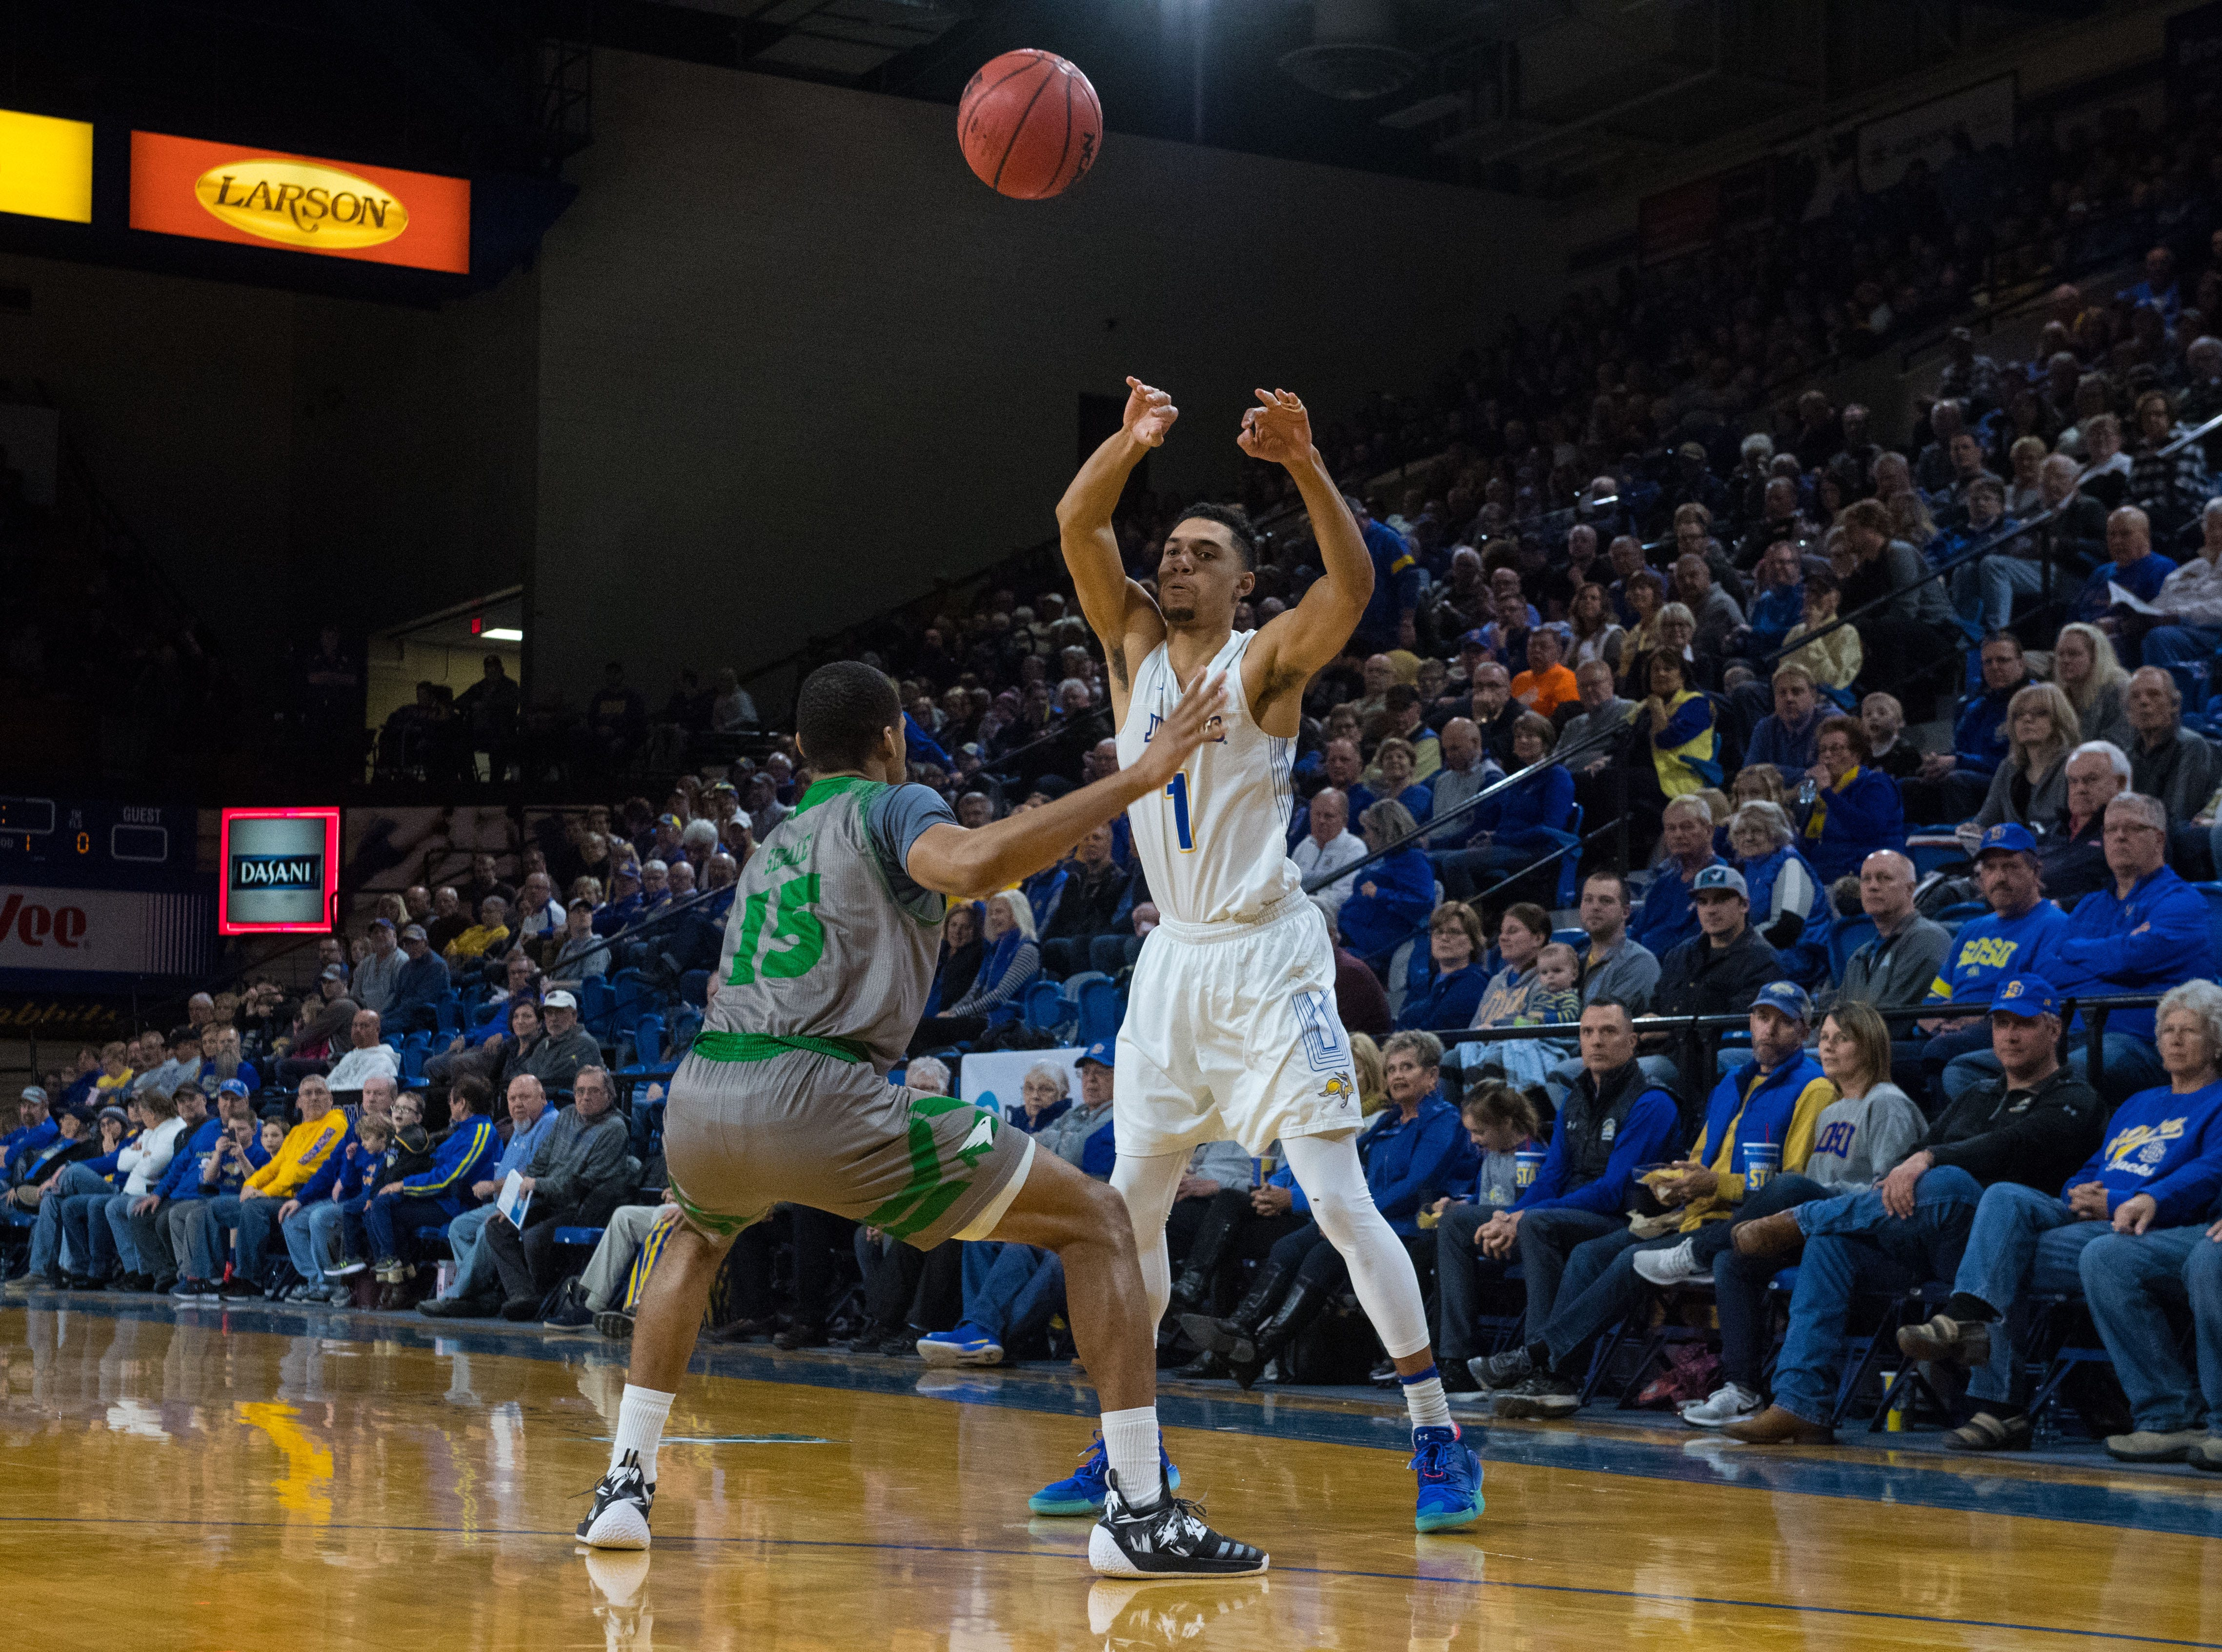 South Dakota State's Skyler Flatten (1) throws the ball over North Dakota's Cortez Seales (15) during a game in Brookings, S.D., Saturday, Feb. 9, 2019.